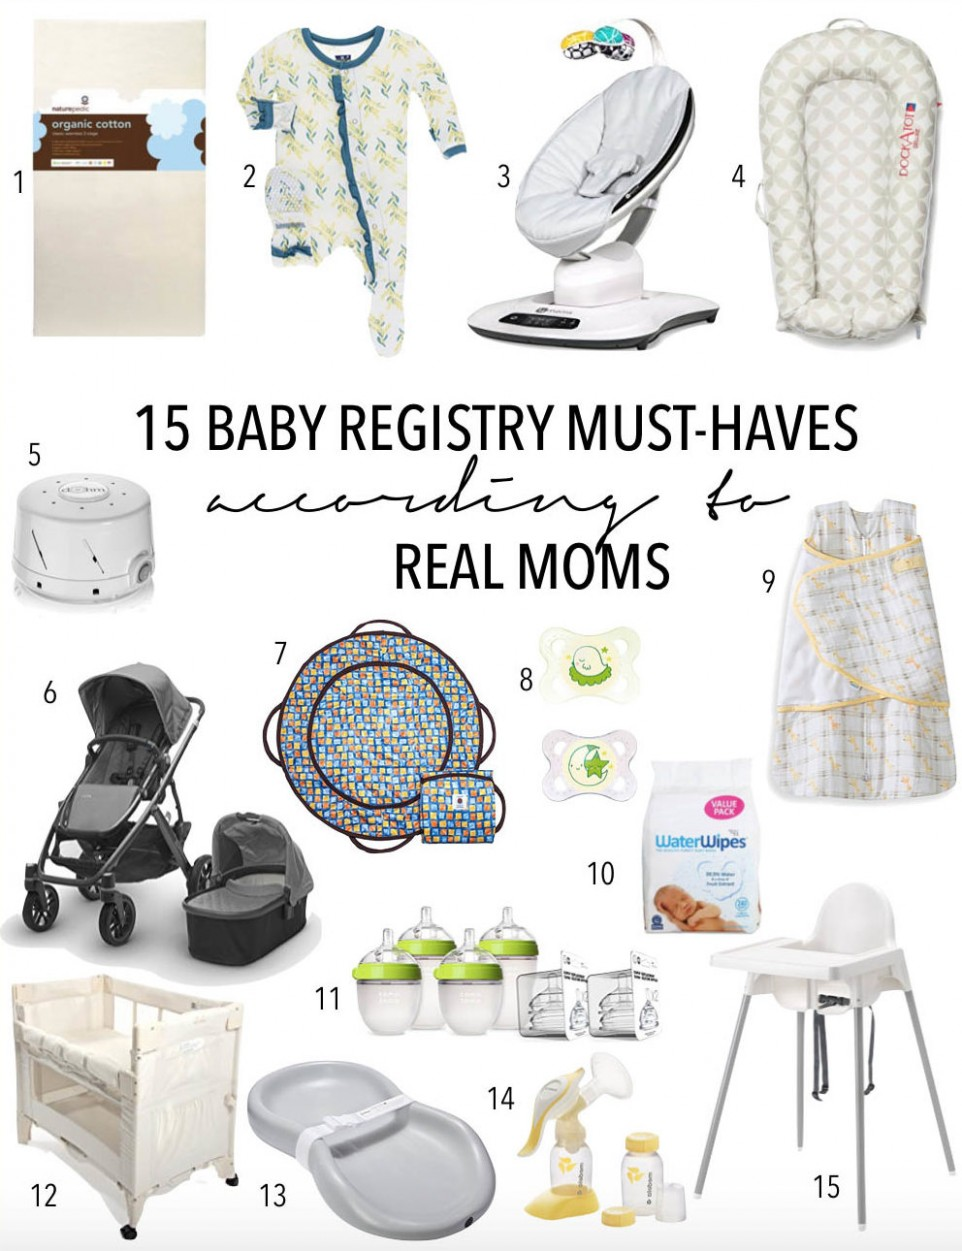 9 Baby Registry Must Haves According to Real Moms • theStyleSafari - Baby Room Must Haves